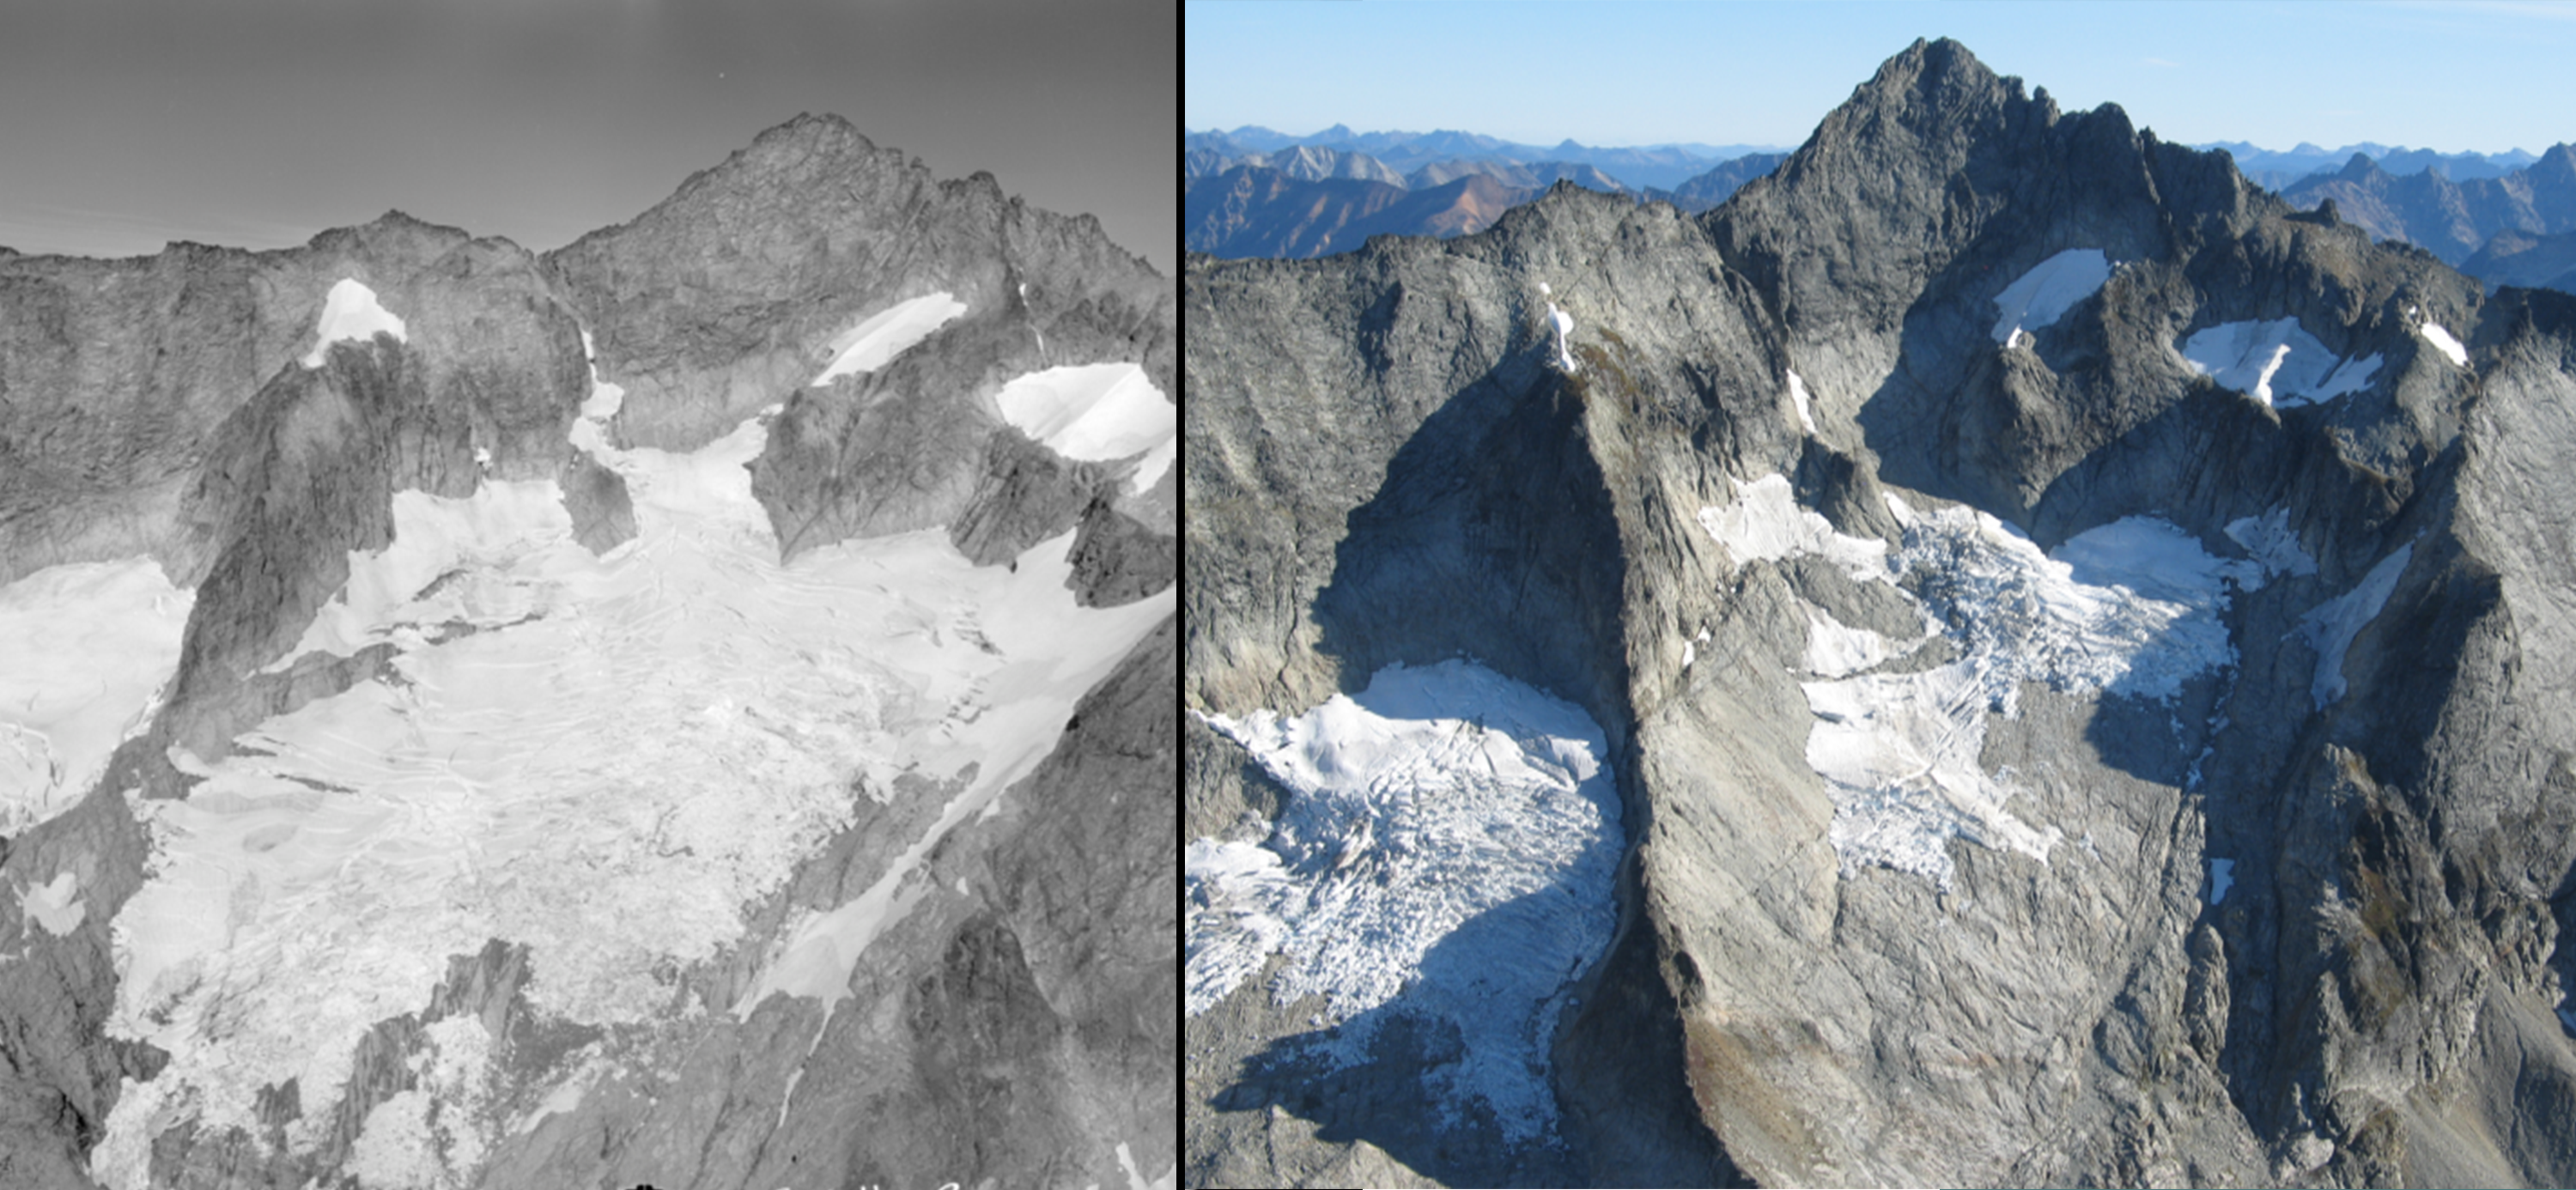 Glacier comparison of receding glacier from 1960 to 2005